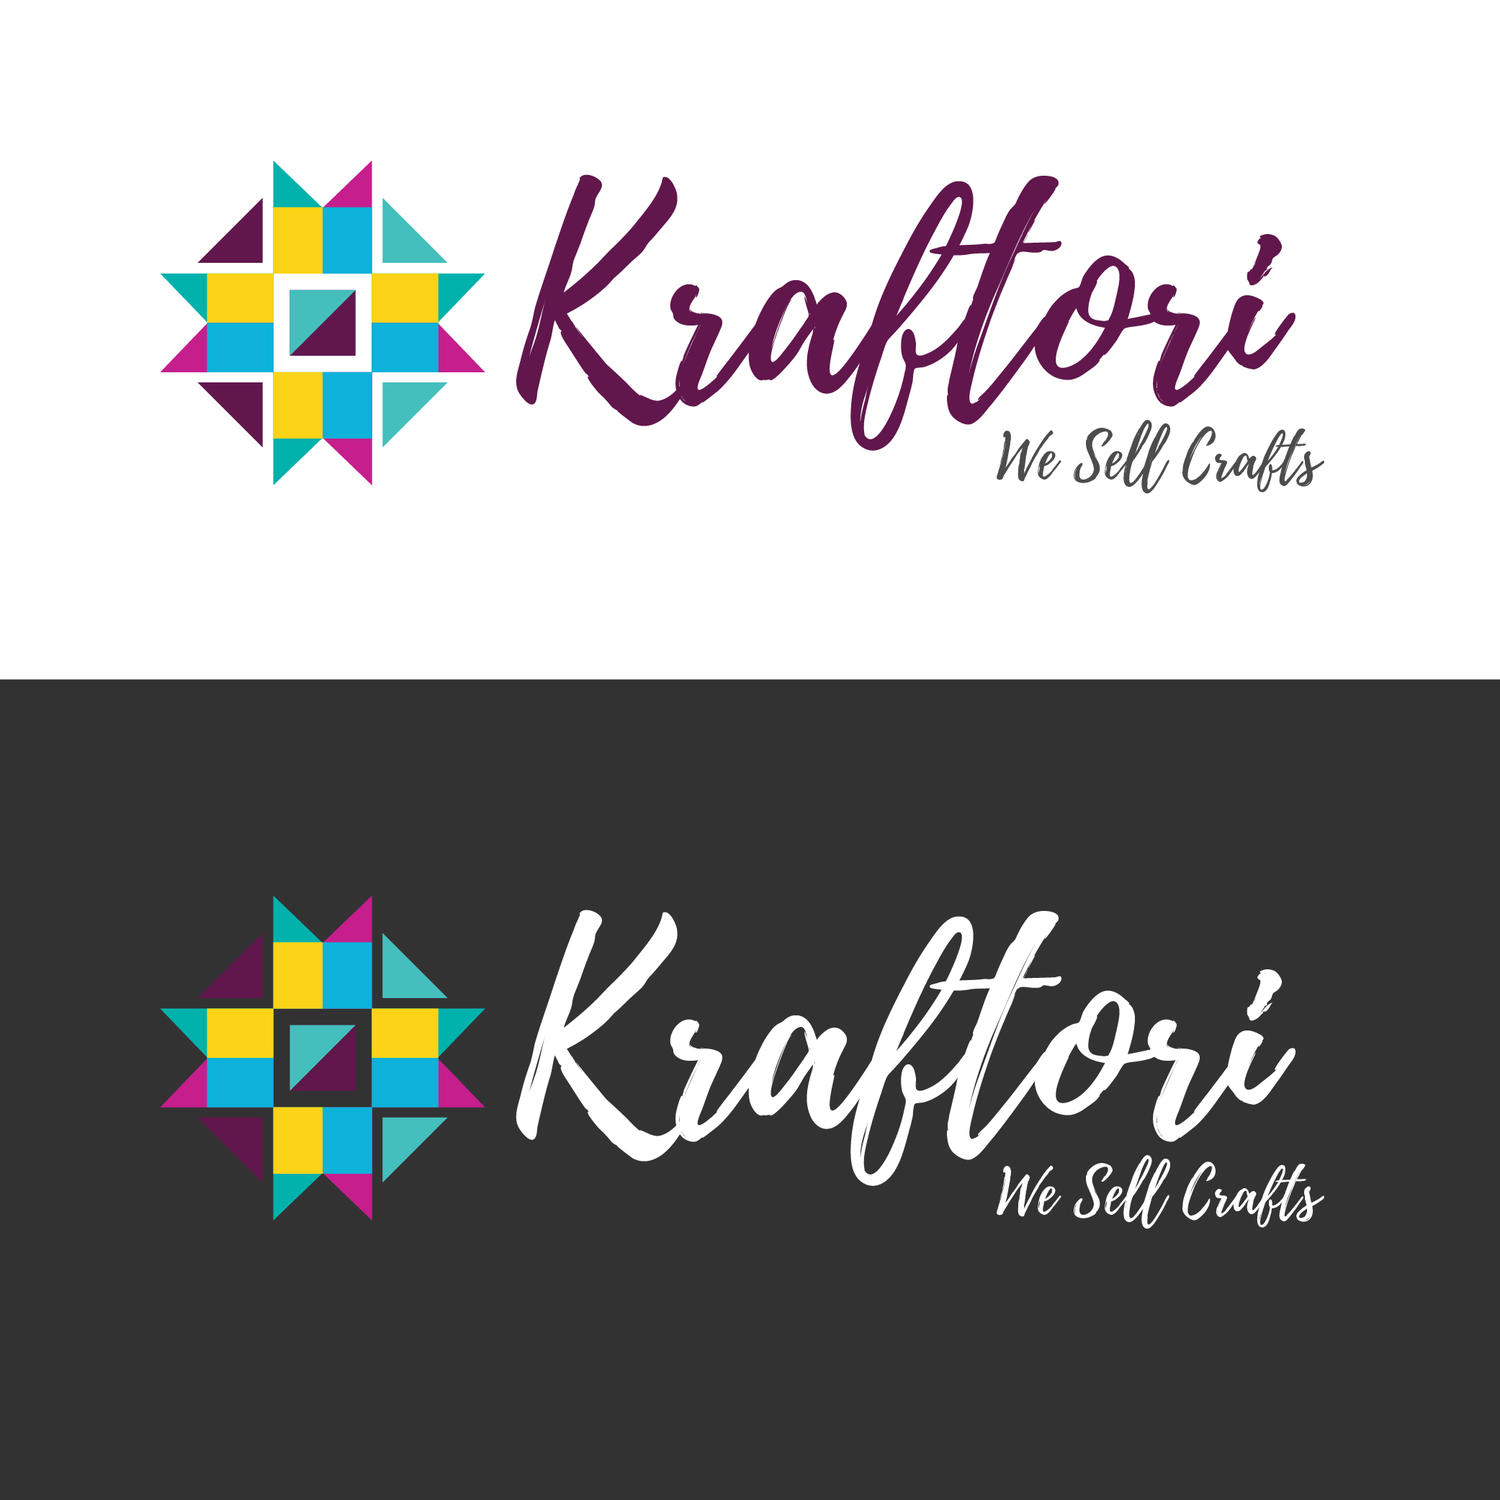 Professional Vector Based Logo Design by theuidesigners - 104439